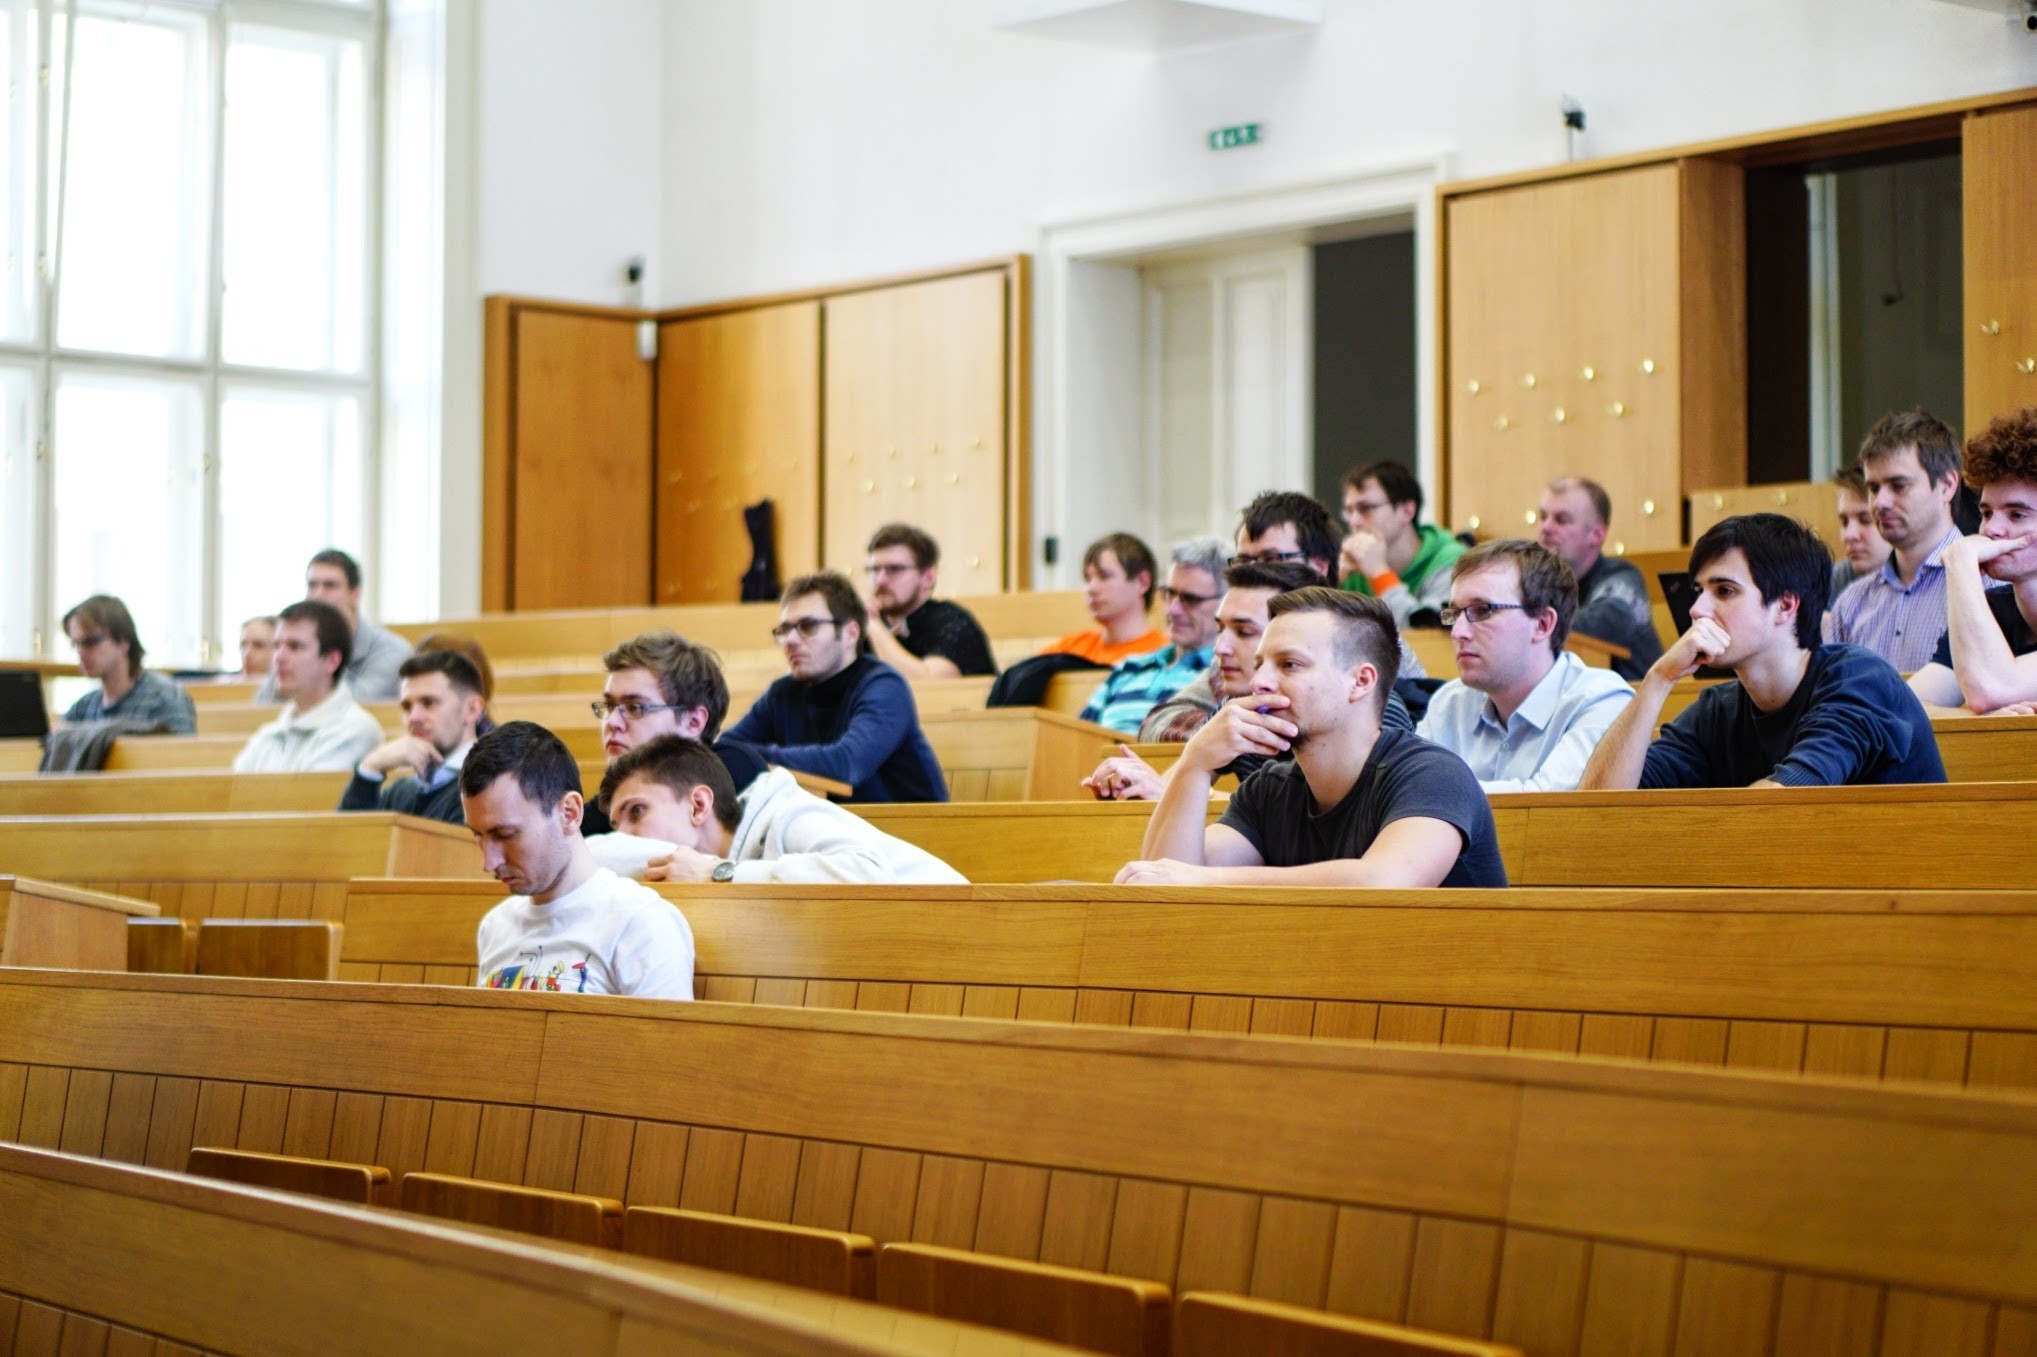 During the lecture